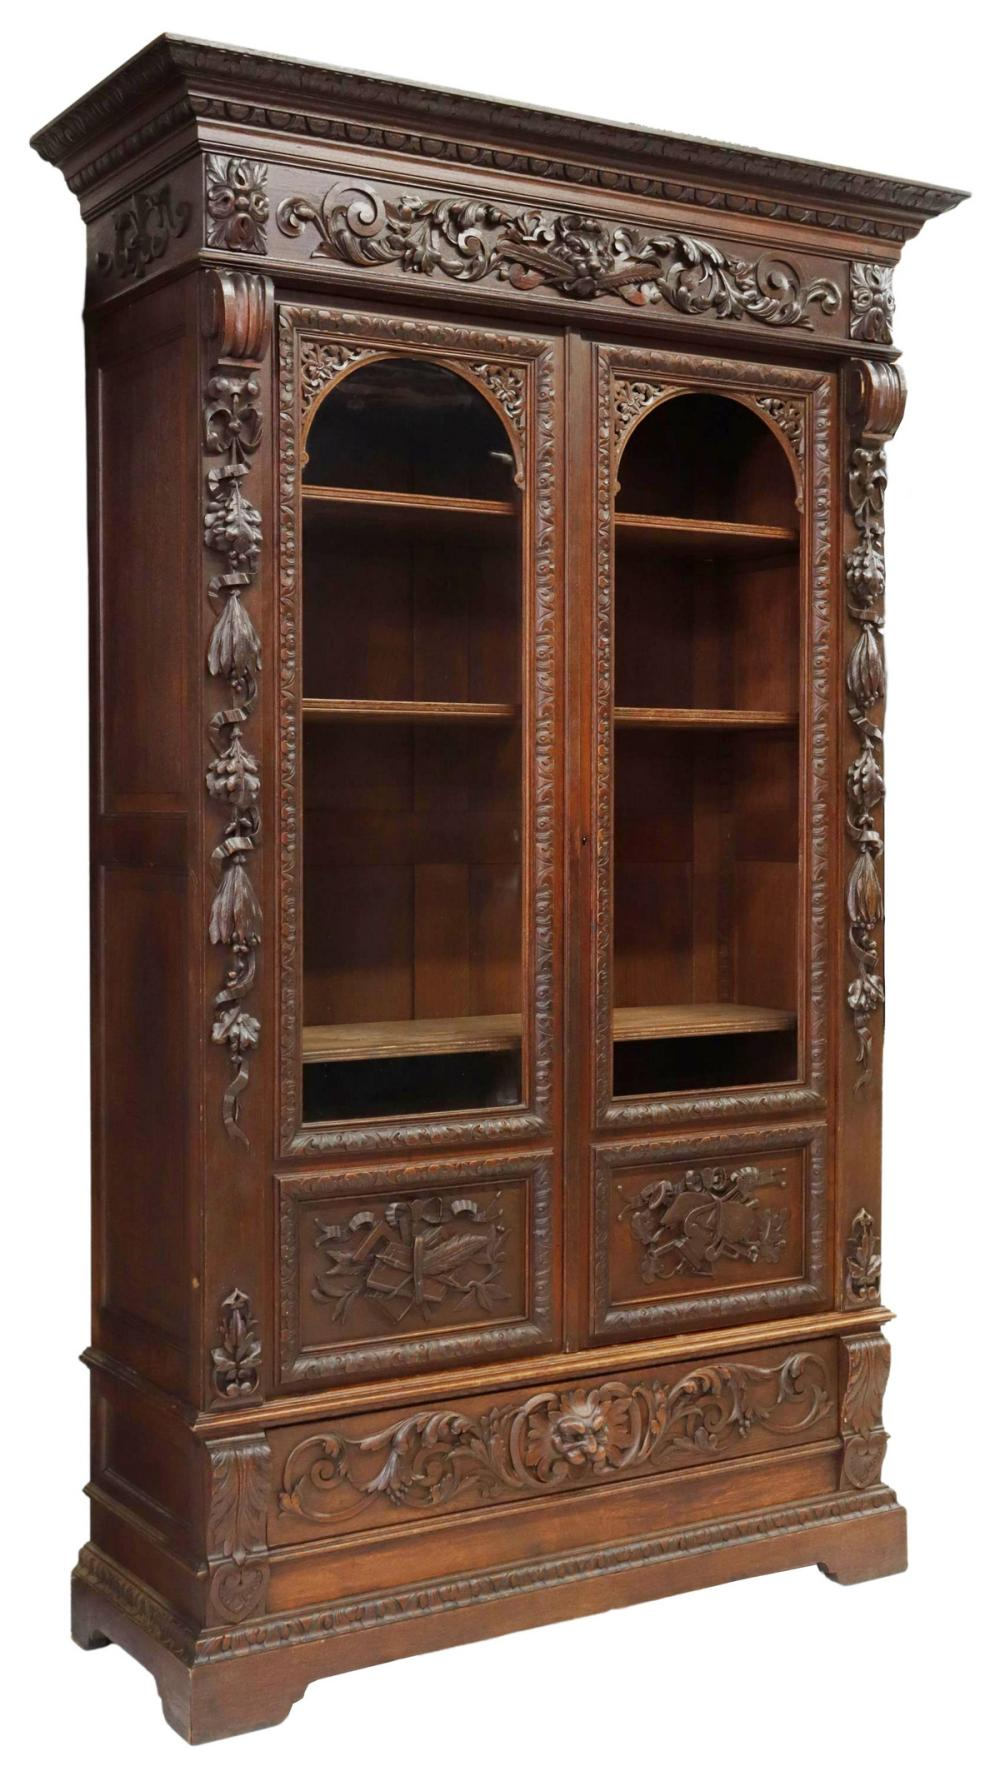 FRENCH CARVED OAK GLAZED BOOKCASE, 19TH C.